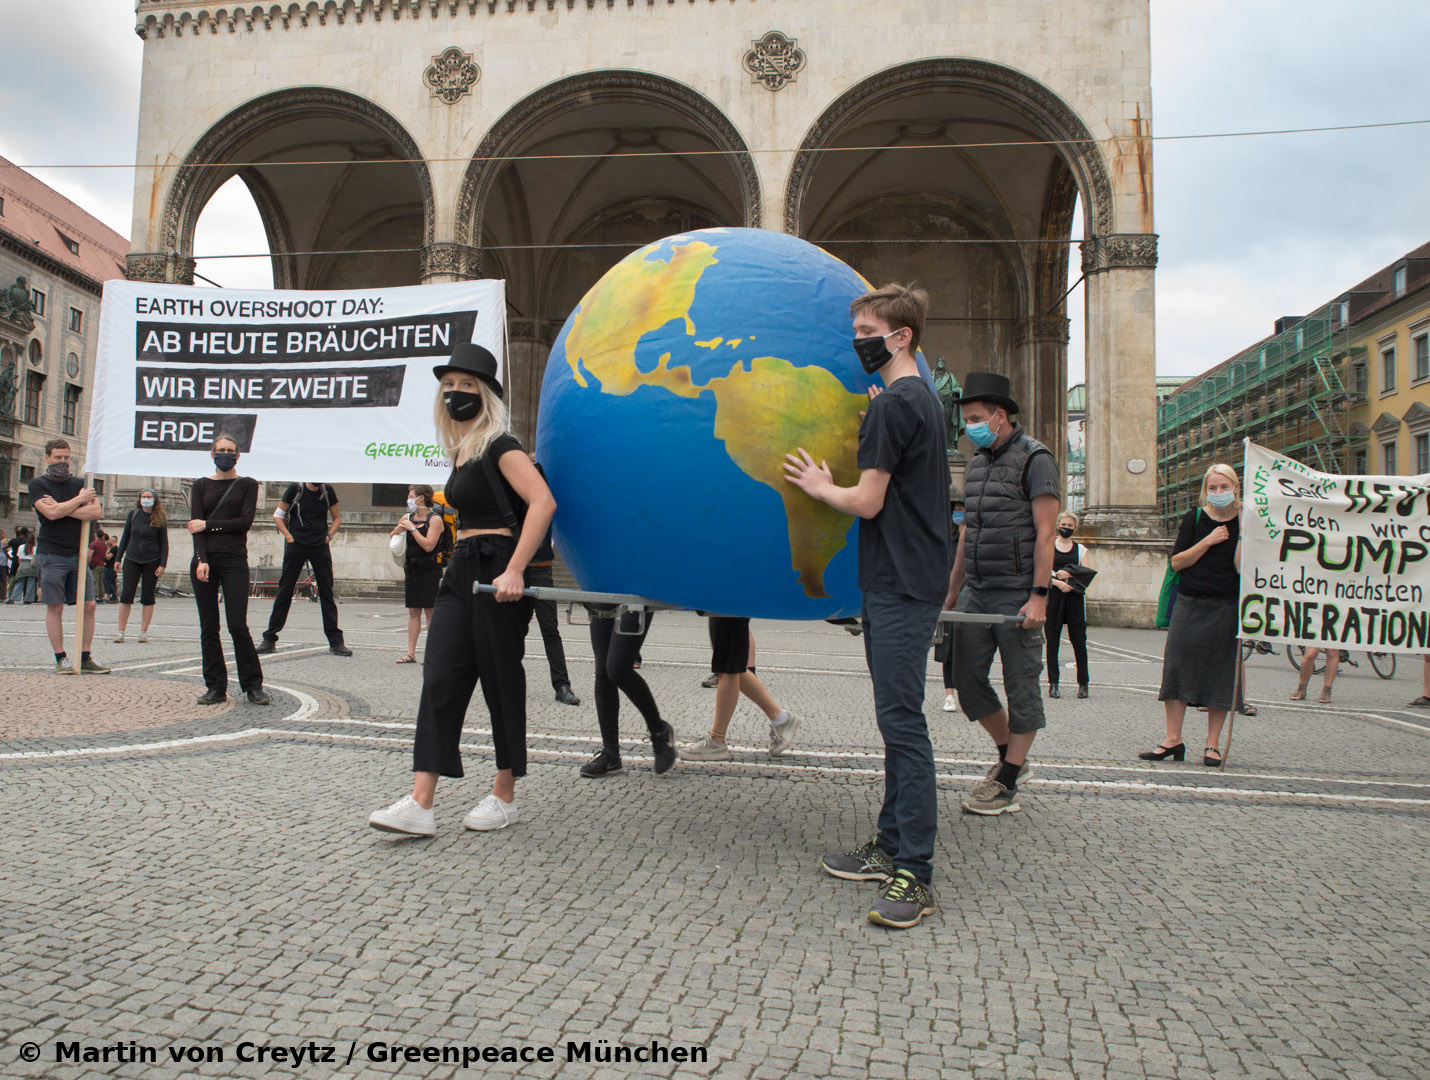 Start des Trauerzugs zum Earth Overshoot Day